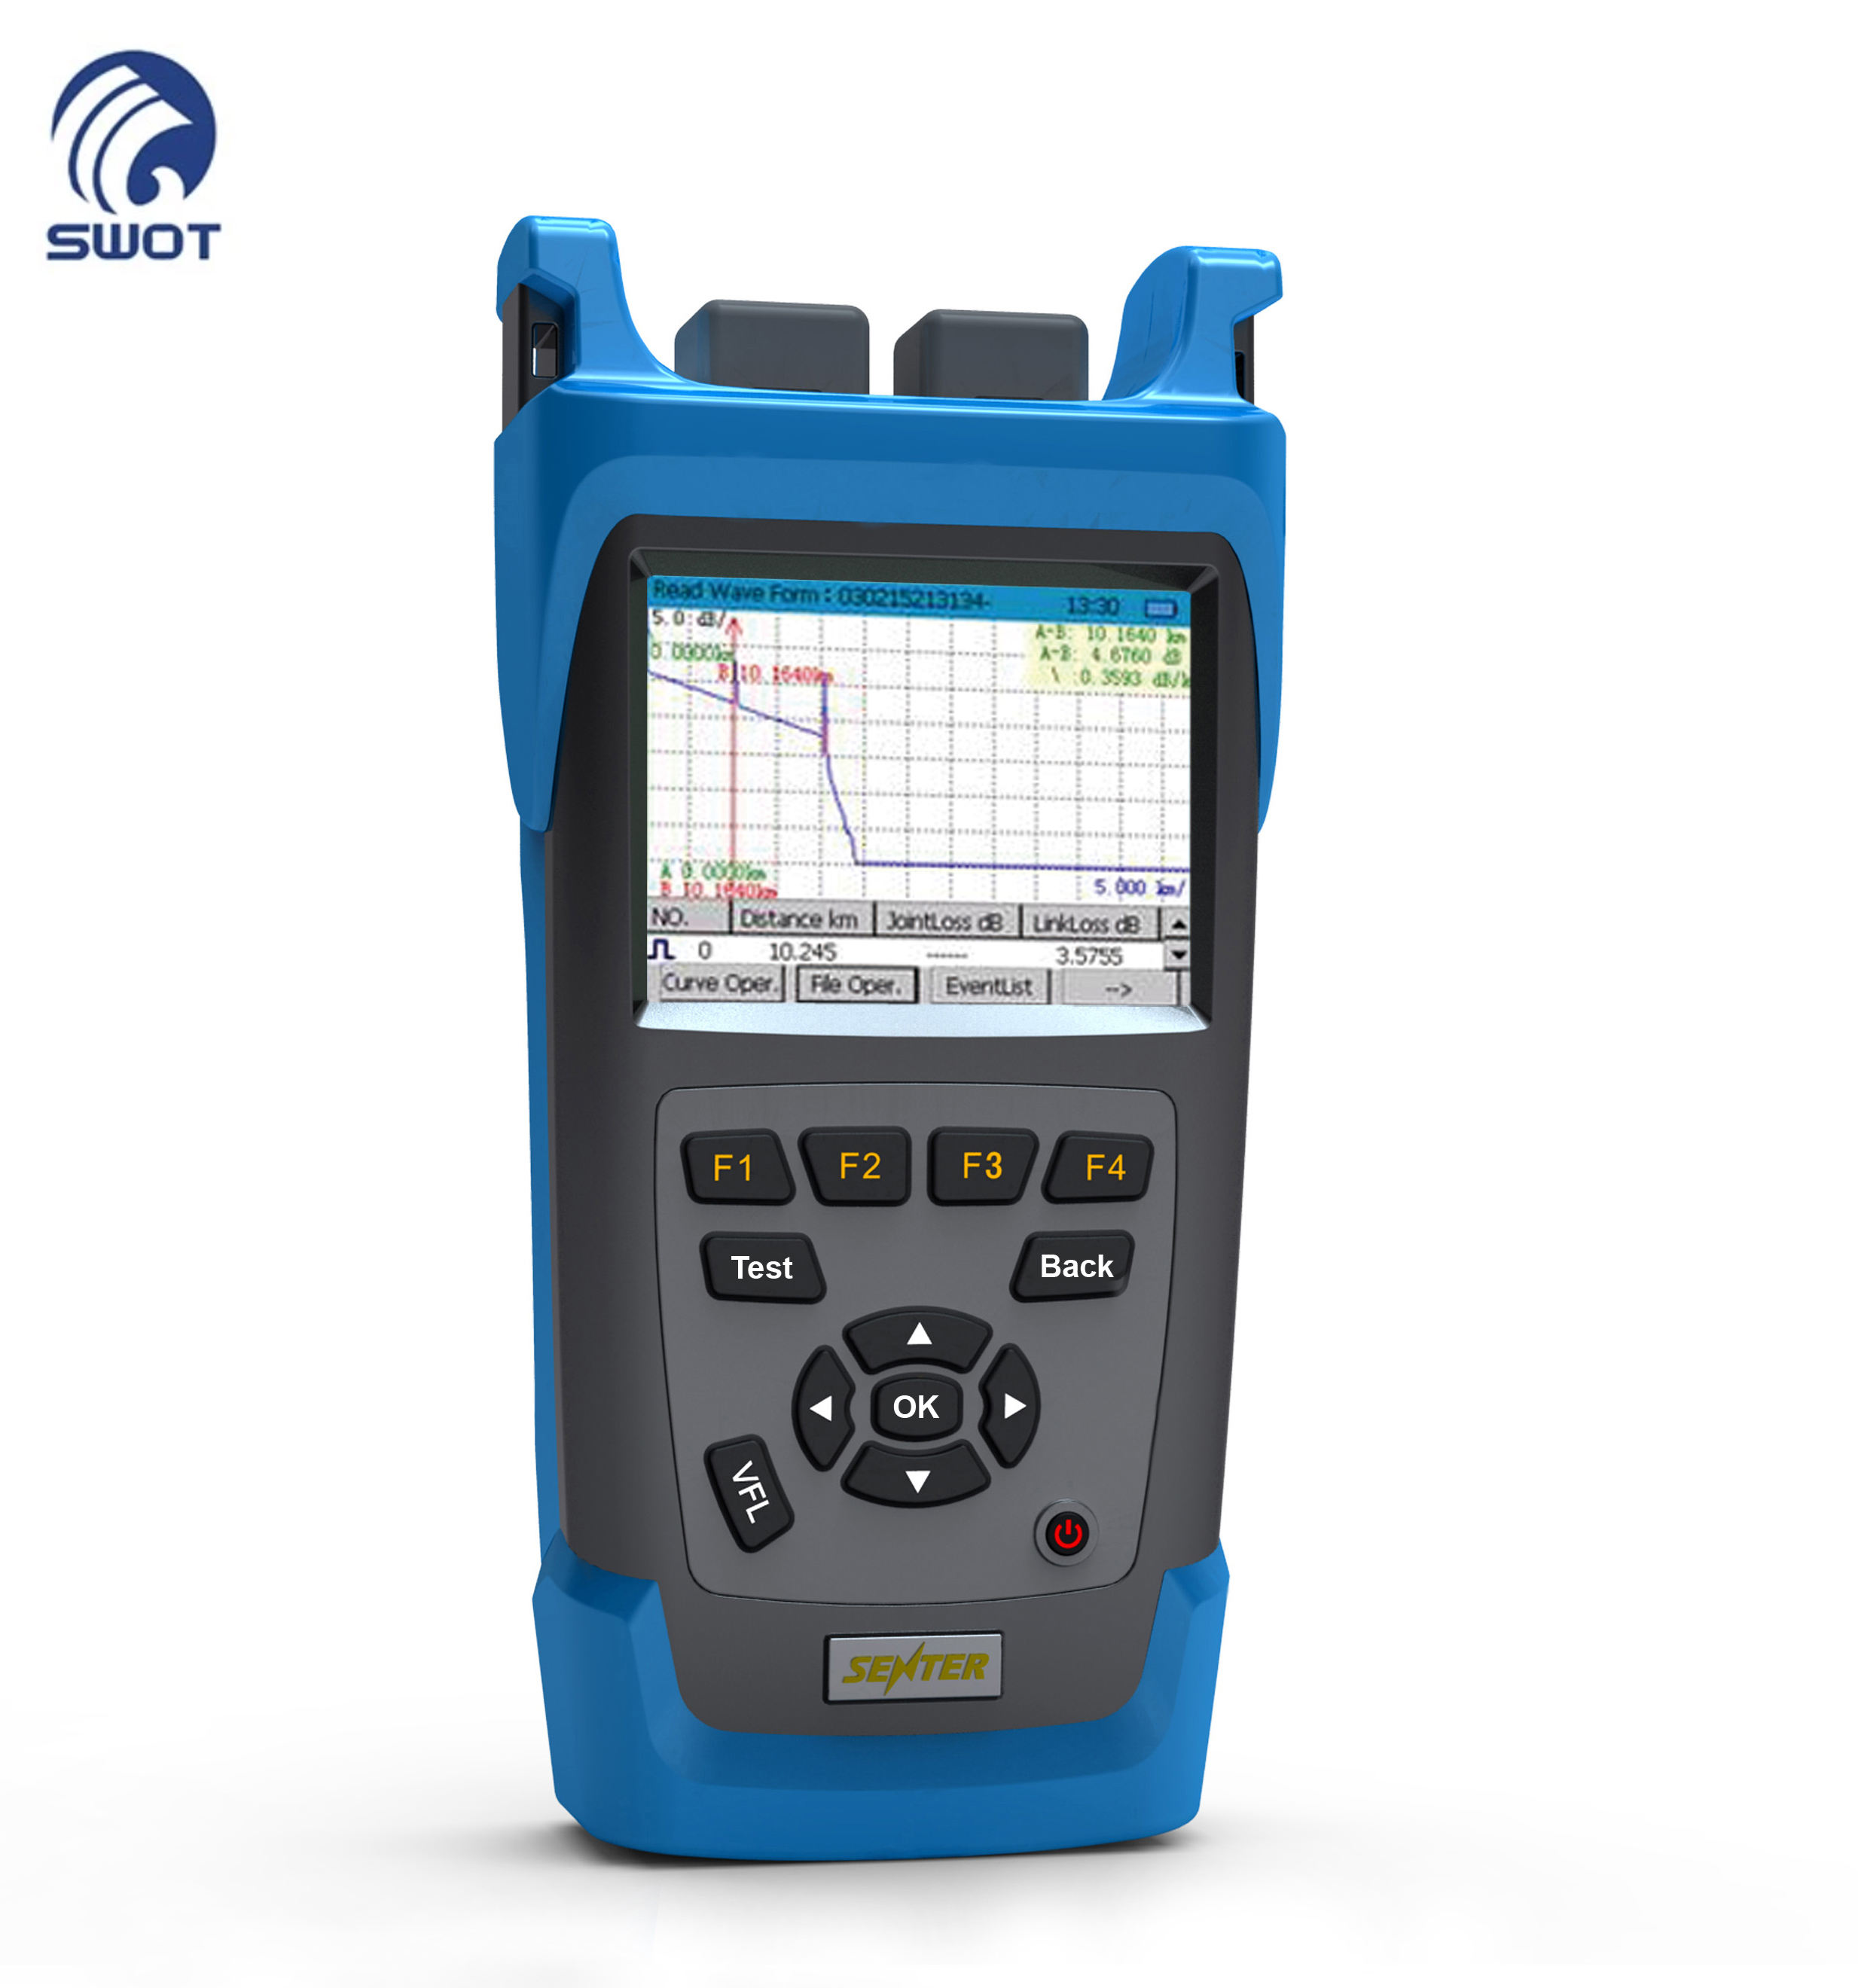 Supply Portable Fiber Optic OTDR 26/28/30/32db Fiber Optic OTDR Tester OT3200